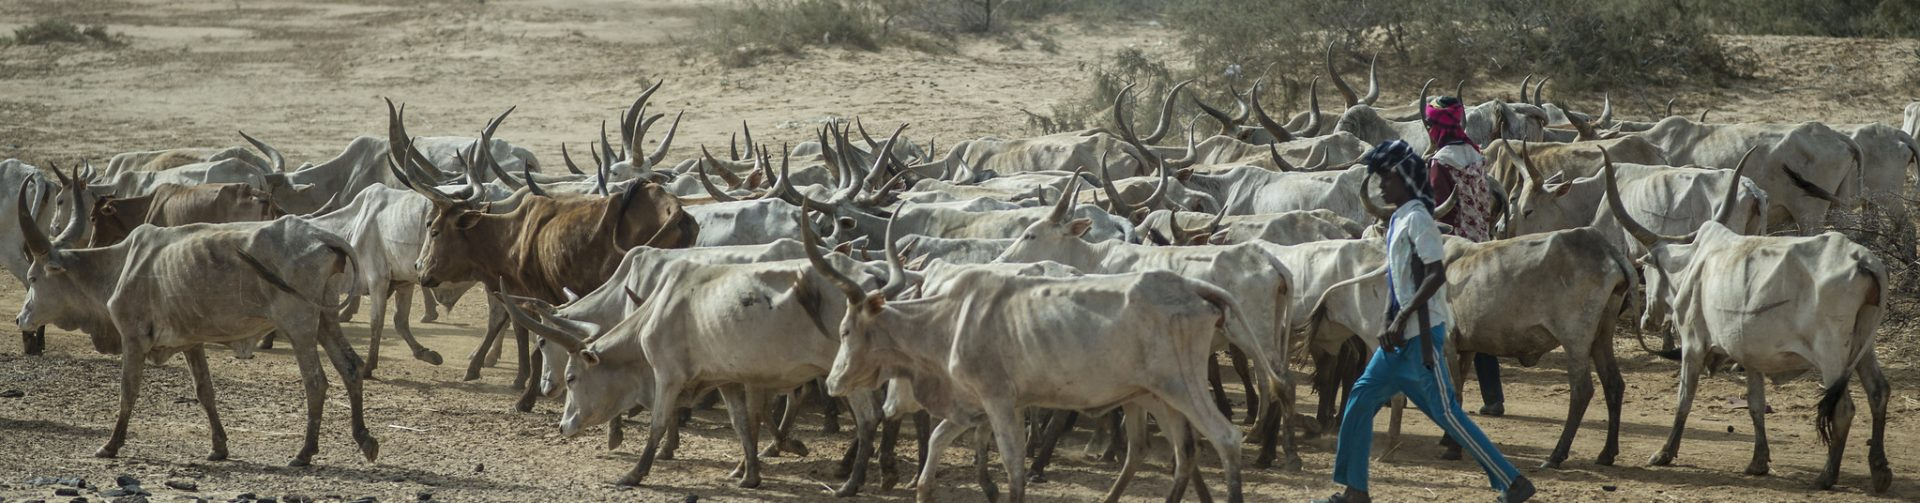 New IFAD/CGIAR note on how to prevent land use conflicts in pastoral areas